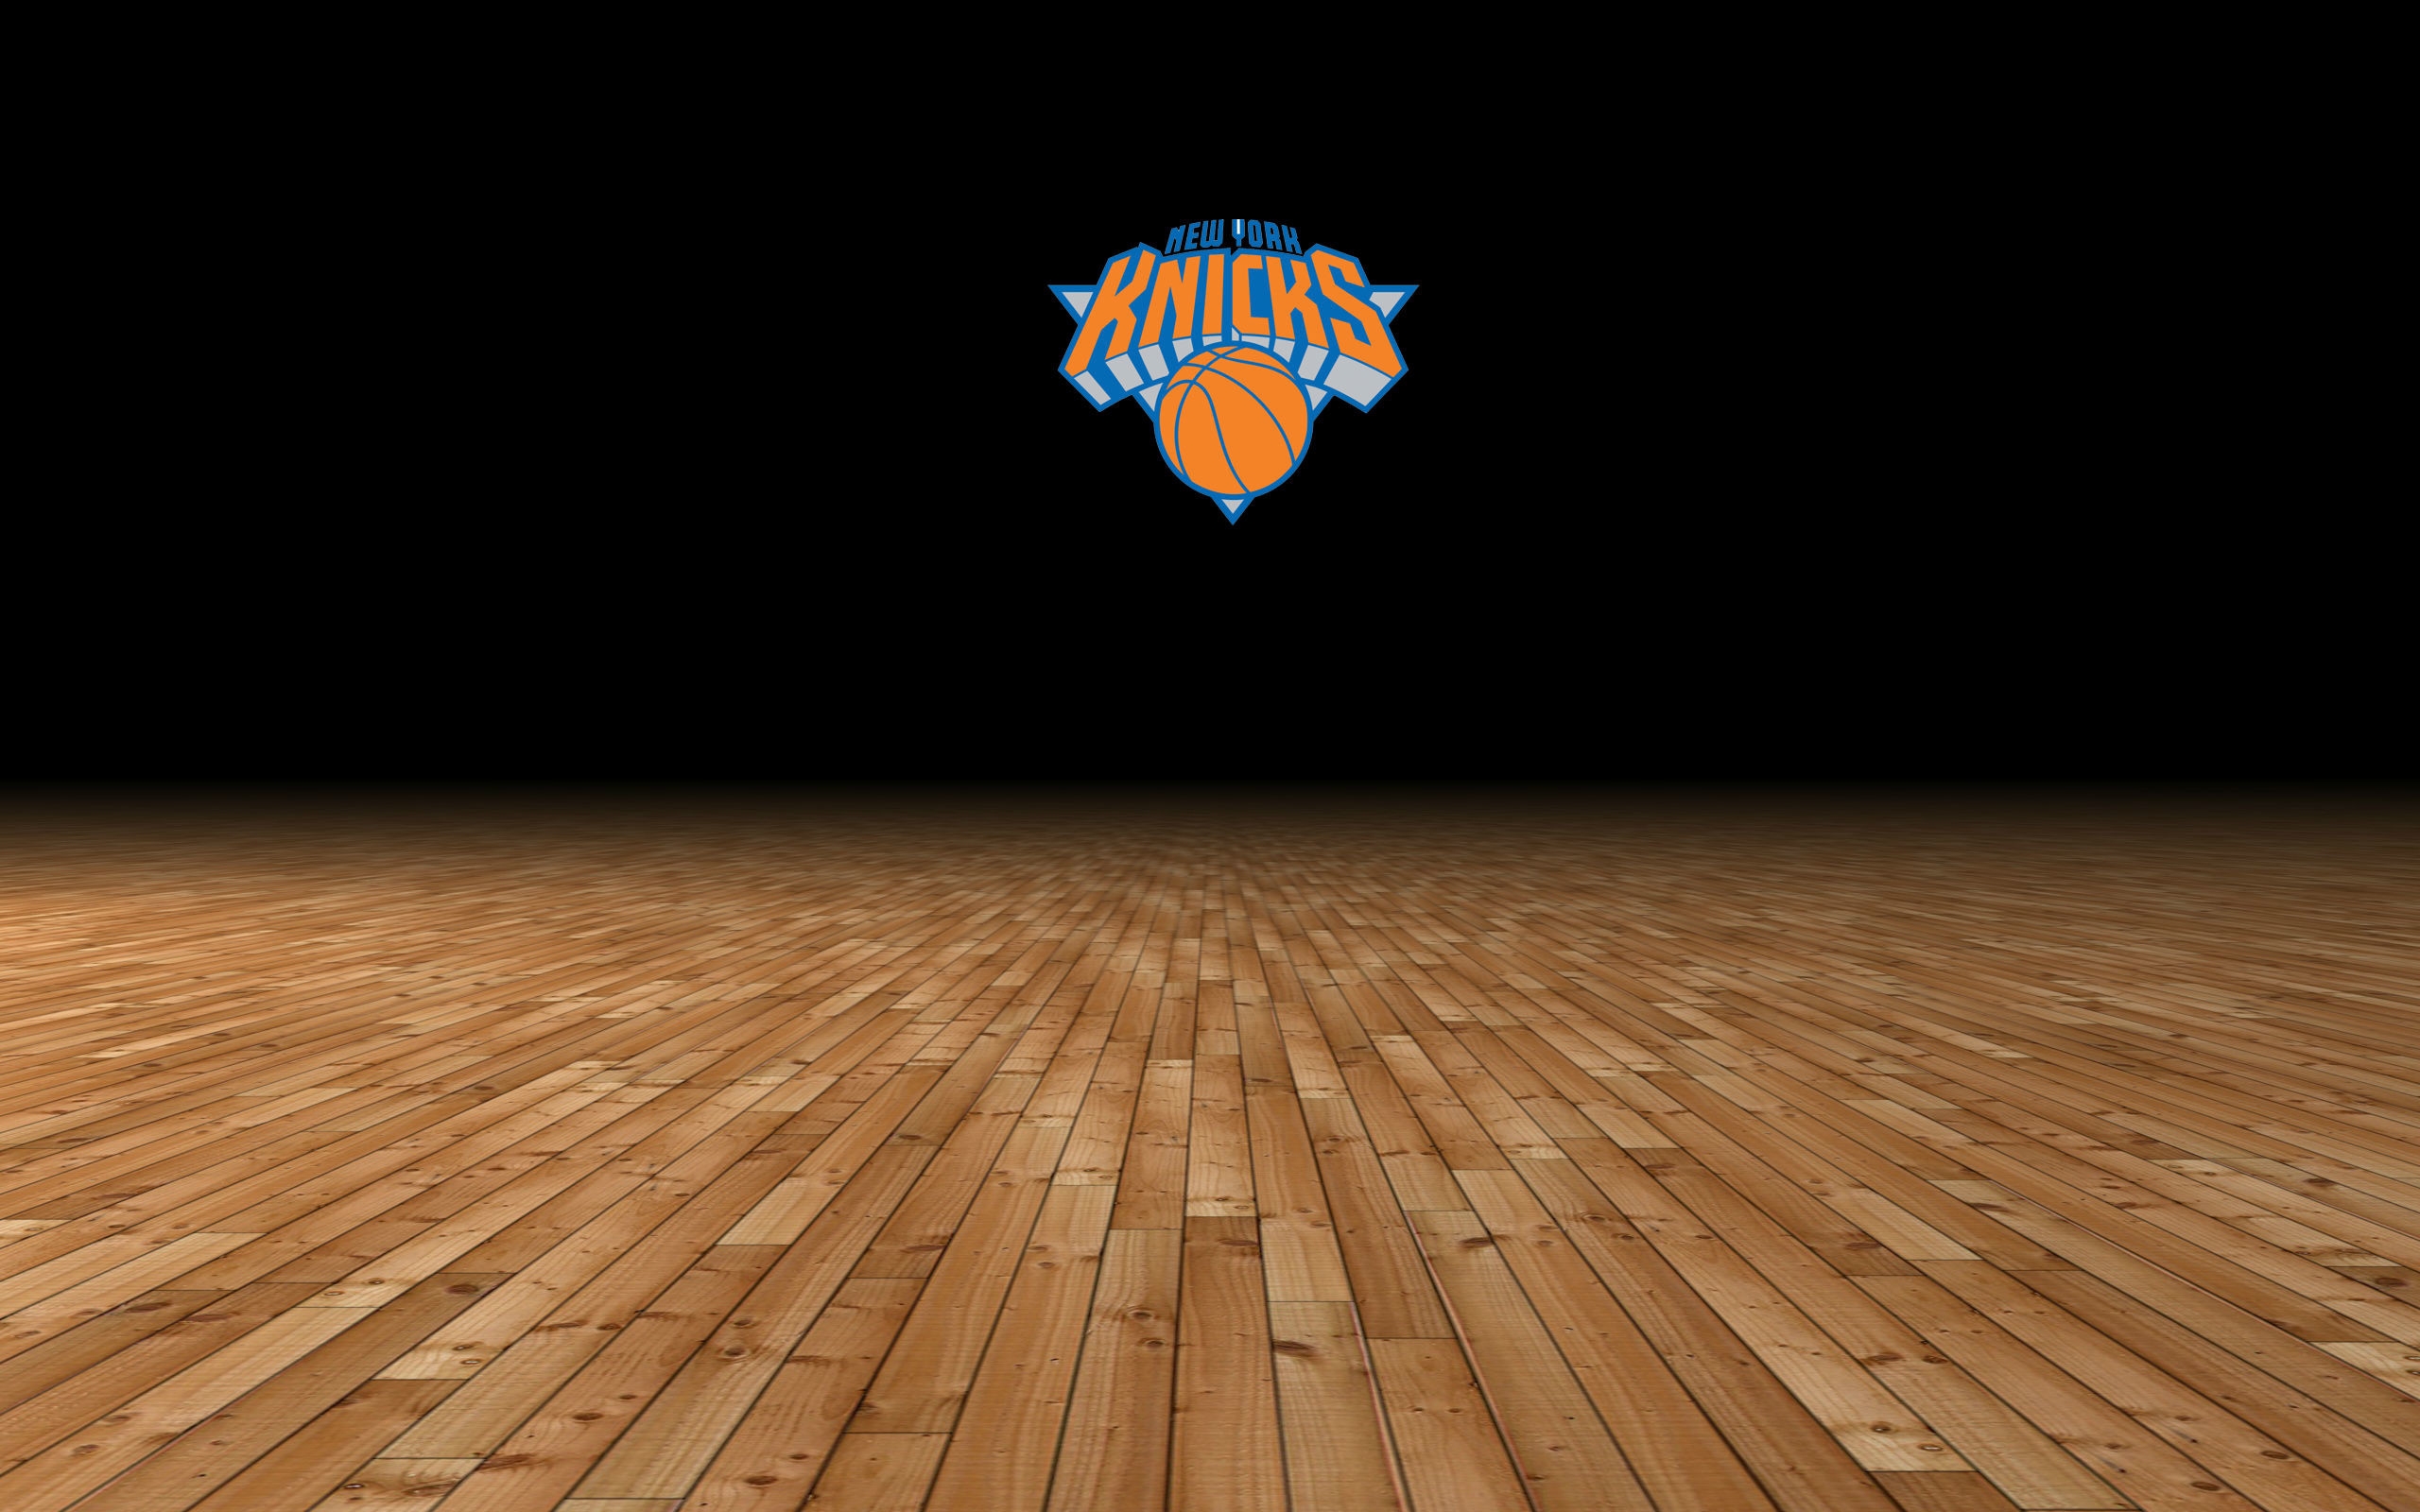 Res: 2560x1600, New York Knicks Wallpapers 16 - 2560 X 1600